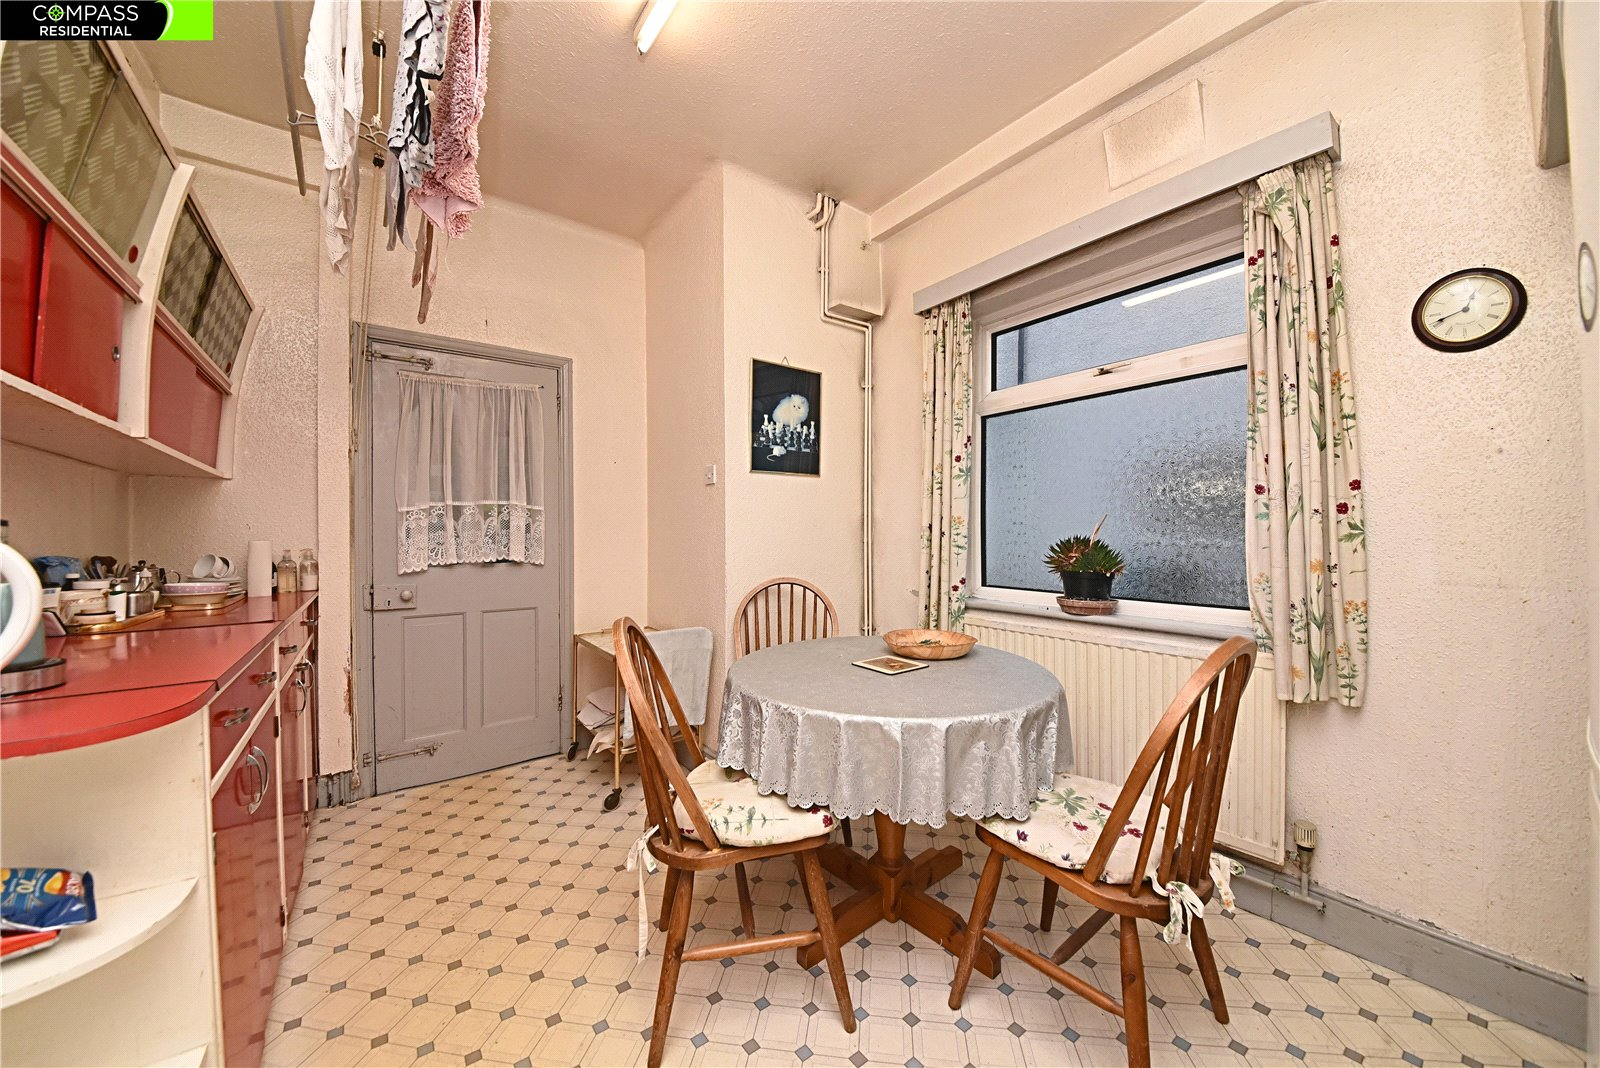 3 bed house for sale in Whetstone, N20 9PT  - Property Image 7